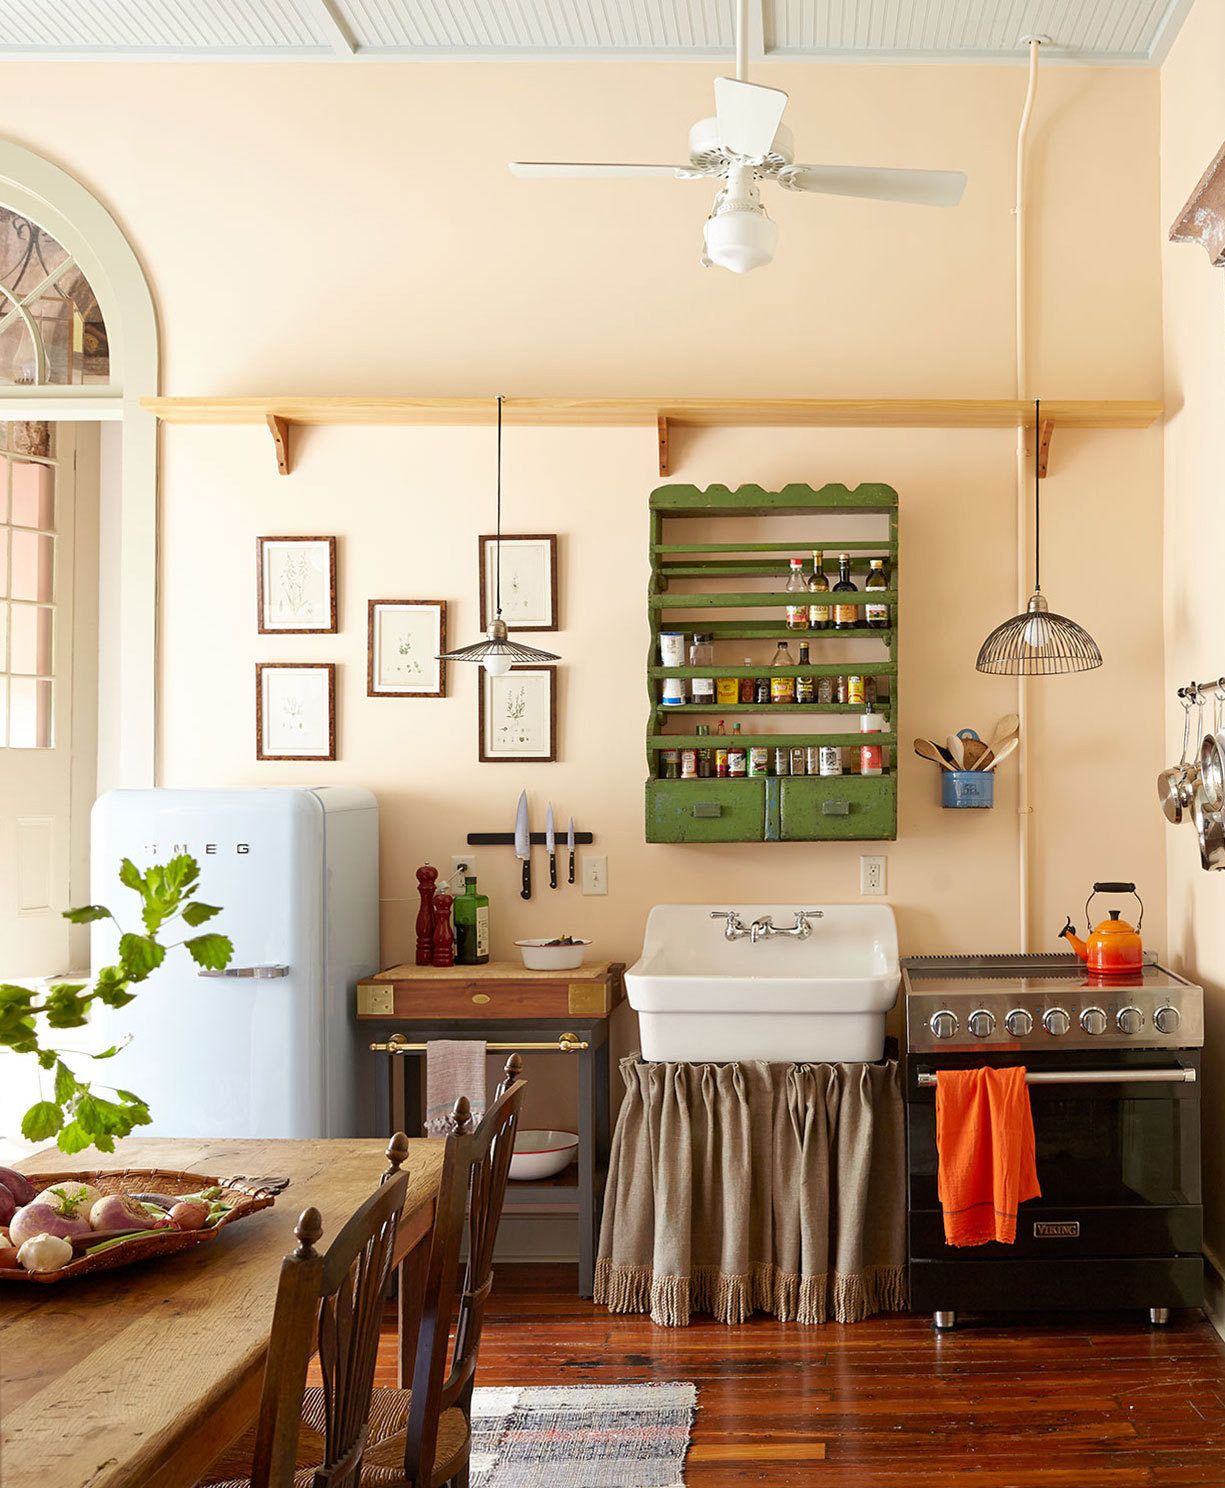 Standard contemporary kitchen cabinets were replaced with a spirited mix of vintage fittings.